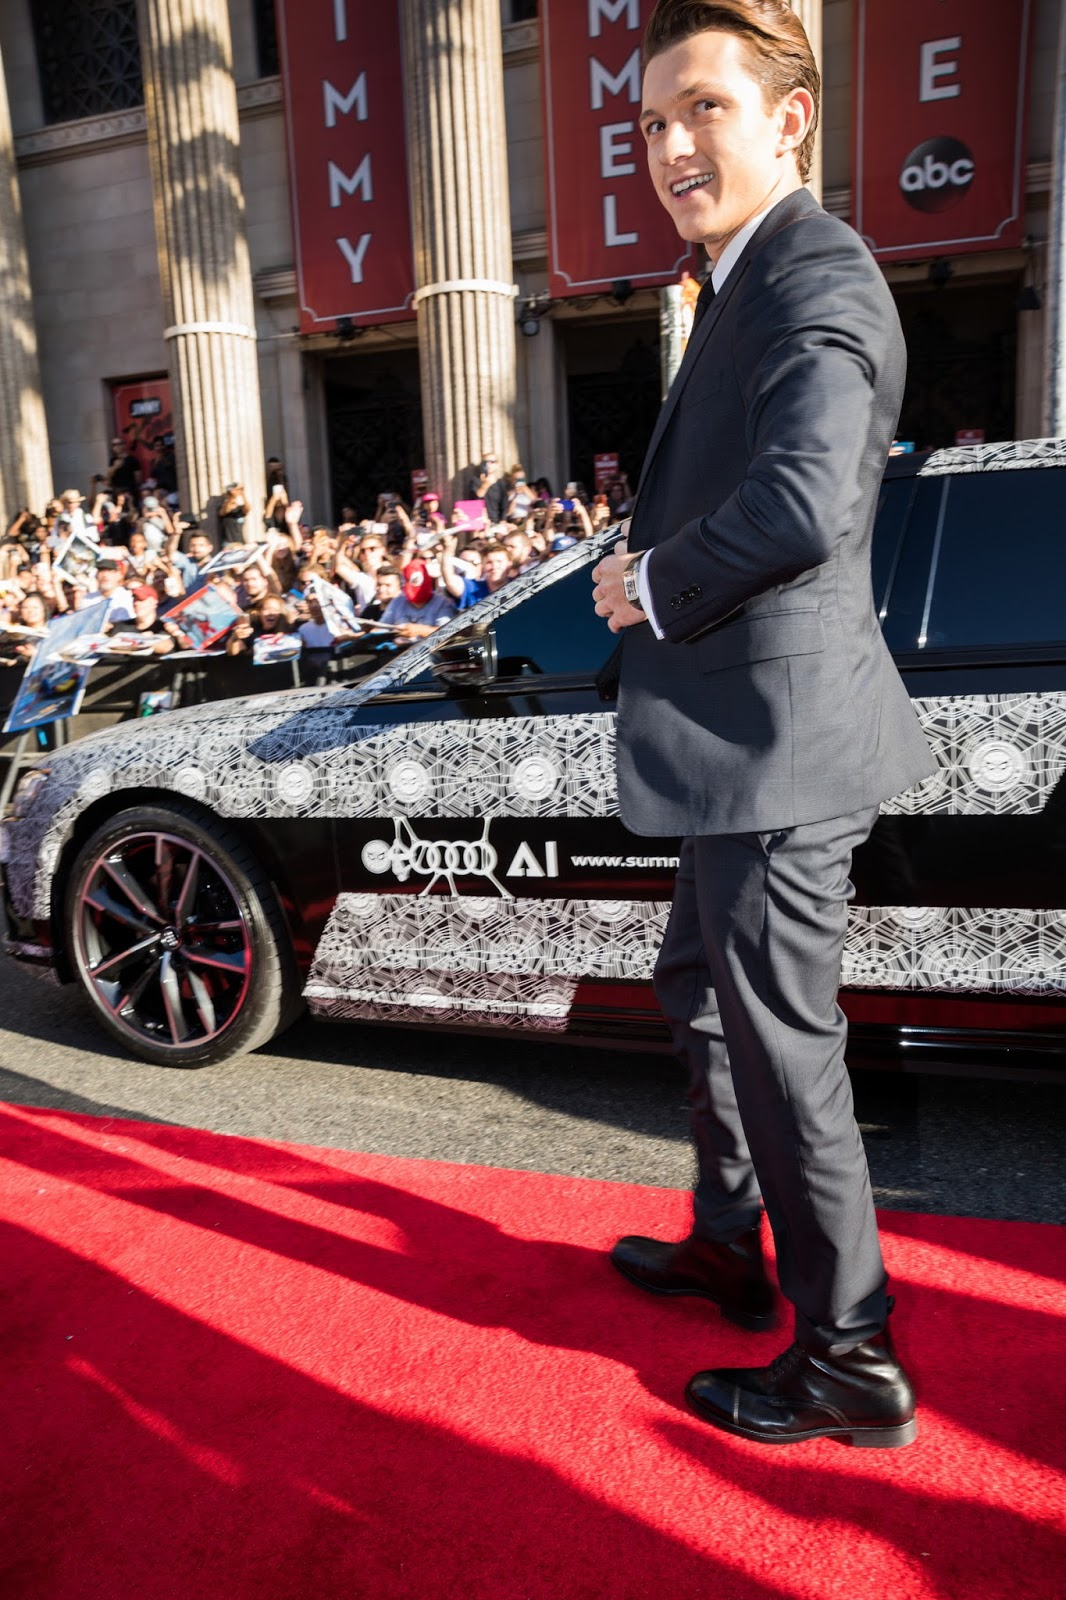 Wednesday night the new Audi A8 could be seen in Los Angeles alongside many Hollywood stars at the world premiere of 'Spider-Man: Homecoming.' Tom Holland, who stars as Peter Parker / Spider-Man, was chauffeured down the red carpet at the TCL Chinese Theatre. Meanwhile, Robert Downey Jr. and Jon Favreau arrived together in a black Audi R8 Spyder.